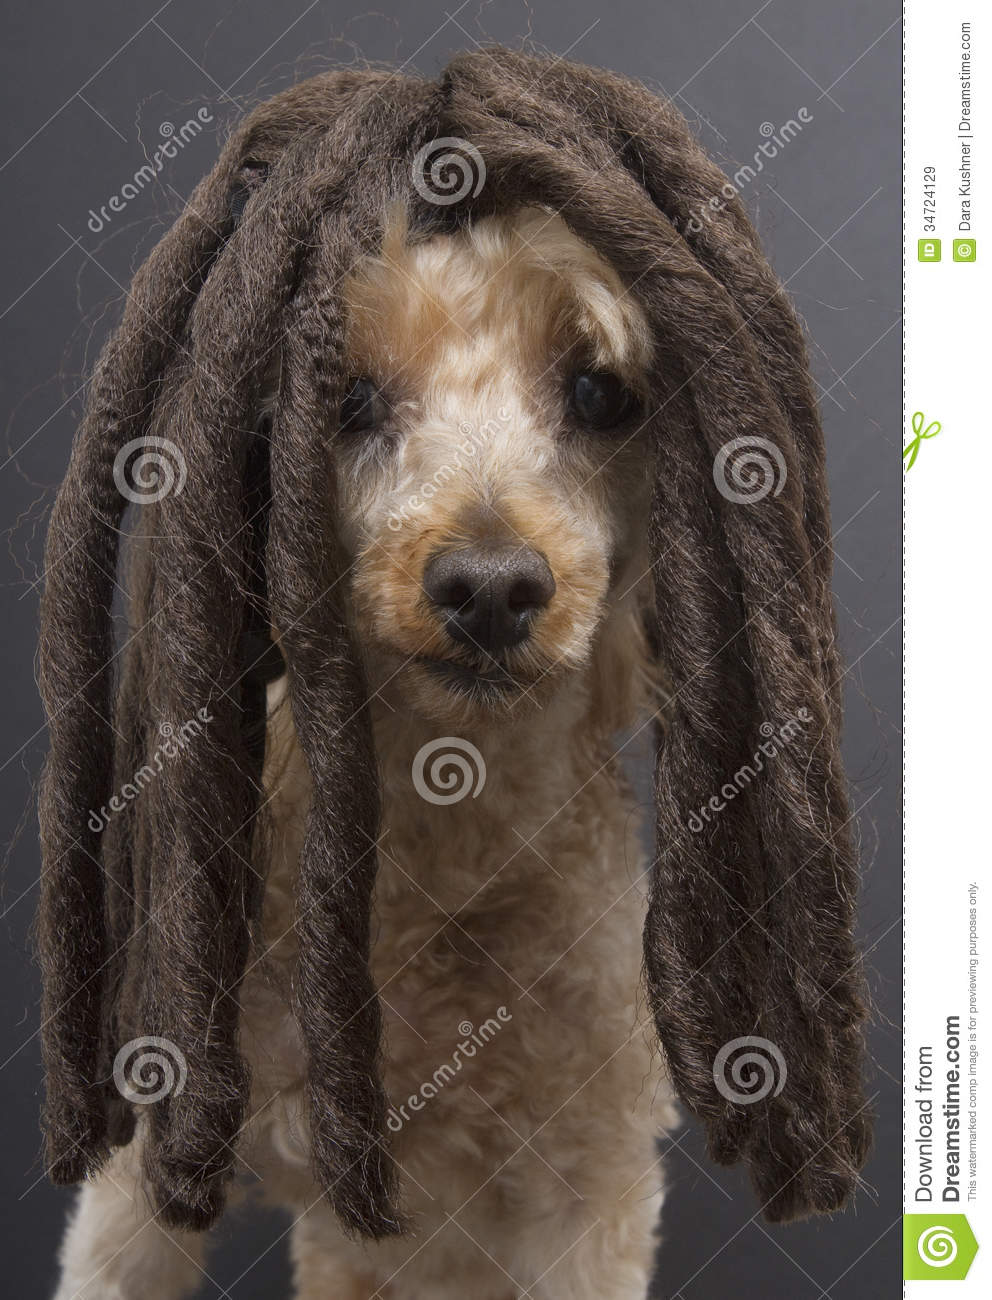 Poodle With Dreads Royalty Free Stock Images Image 34724129